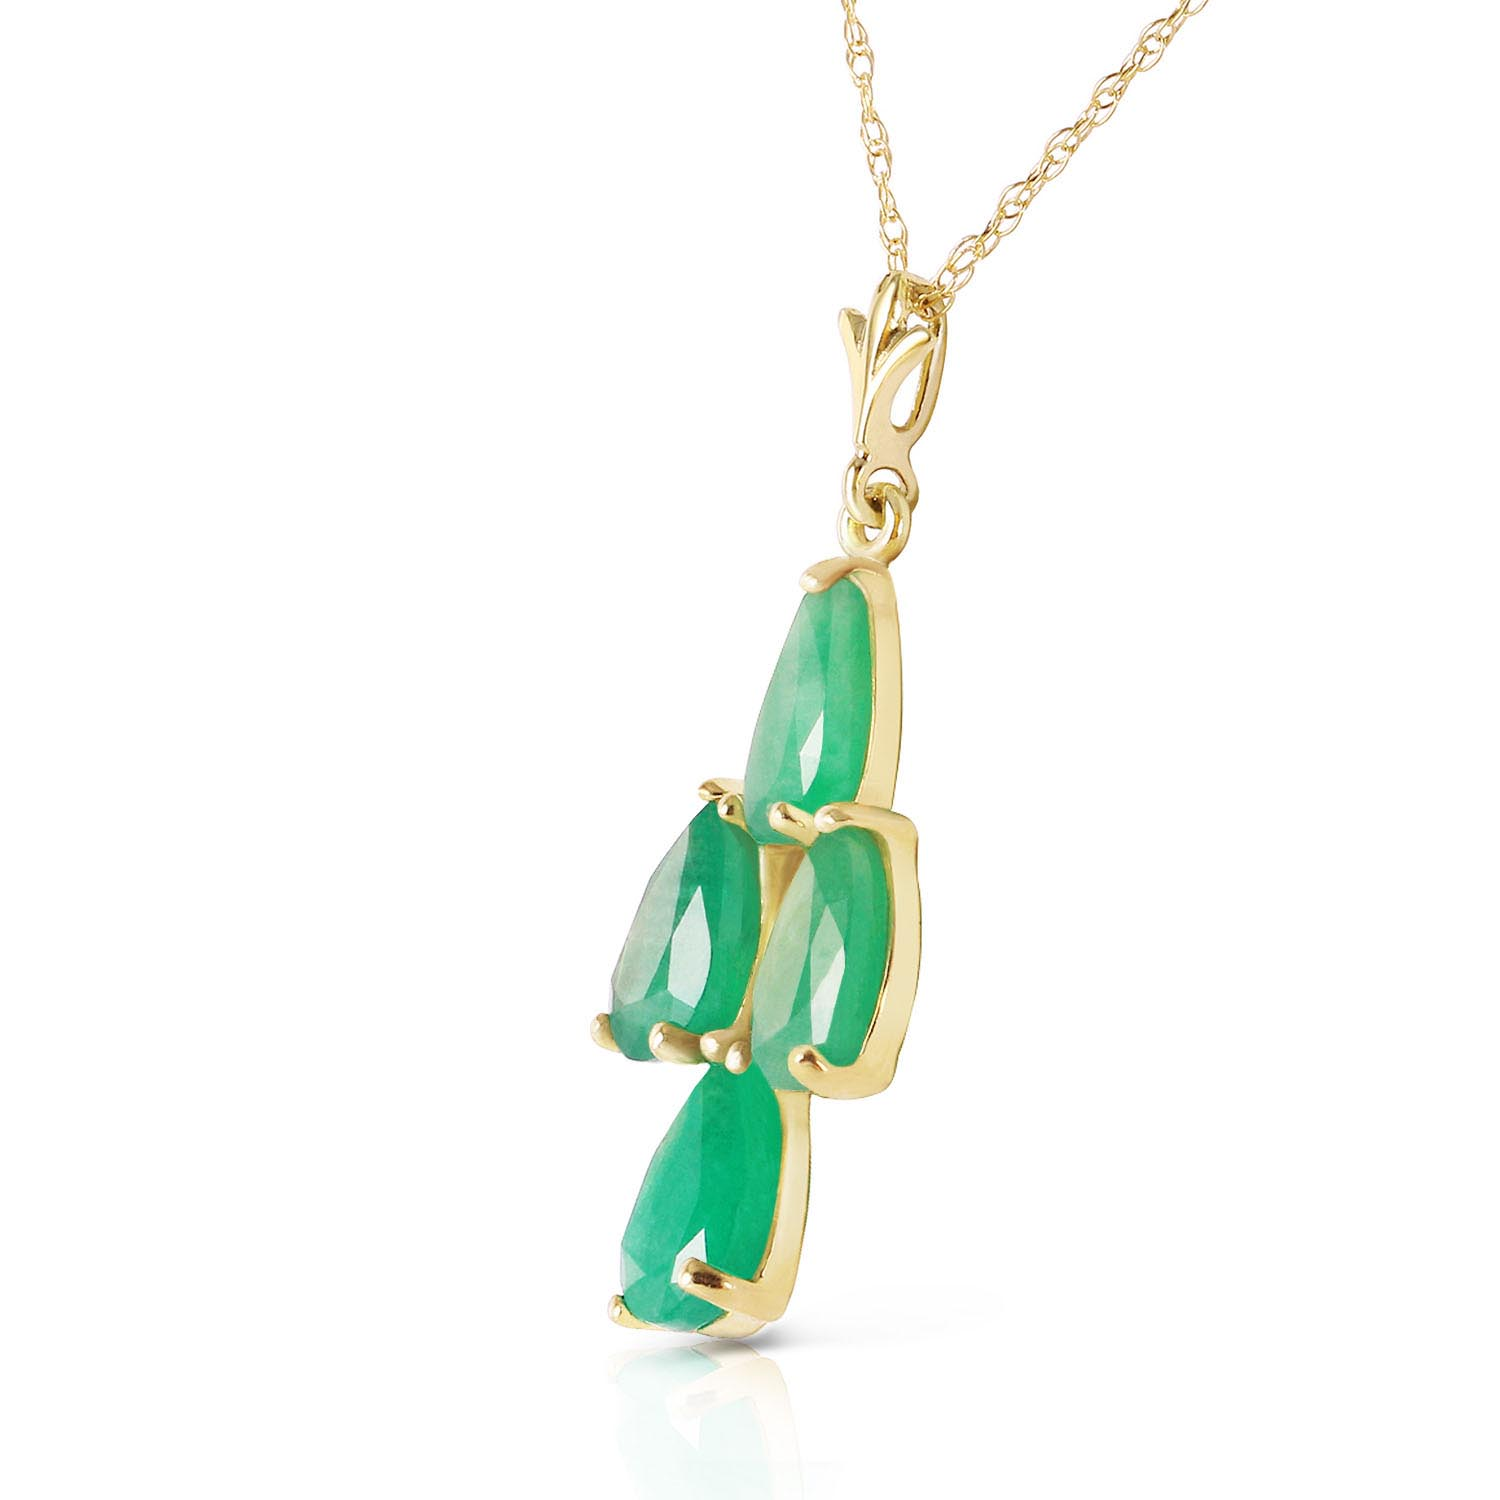 Pear Cut Emerald Pendant Necklace 1.5ctw in 9ct Gold